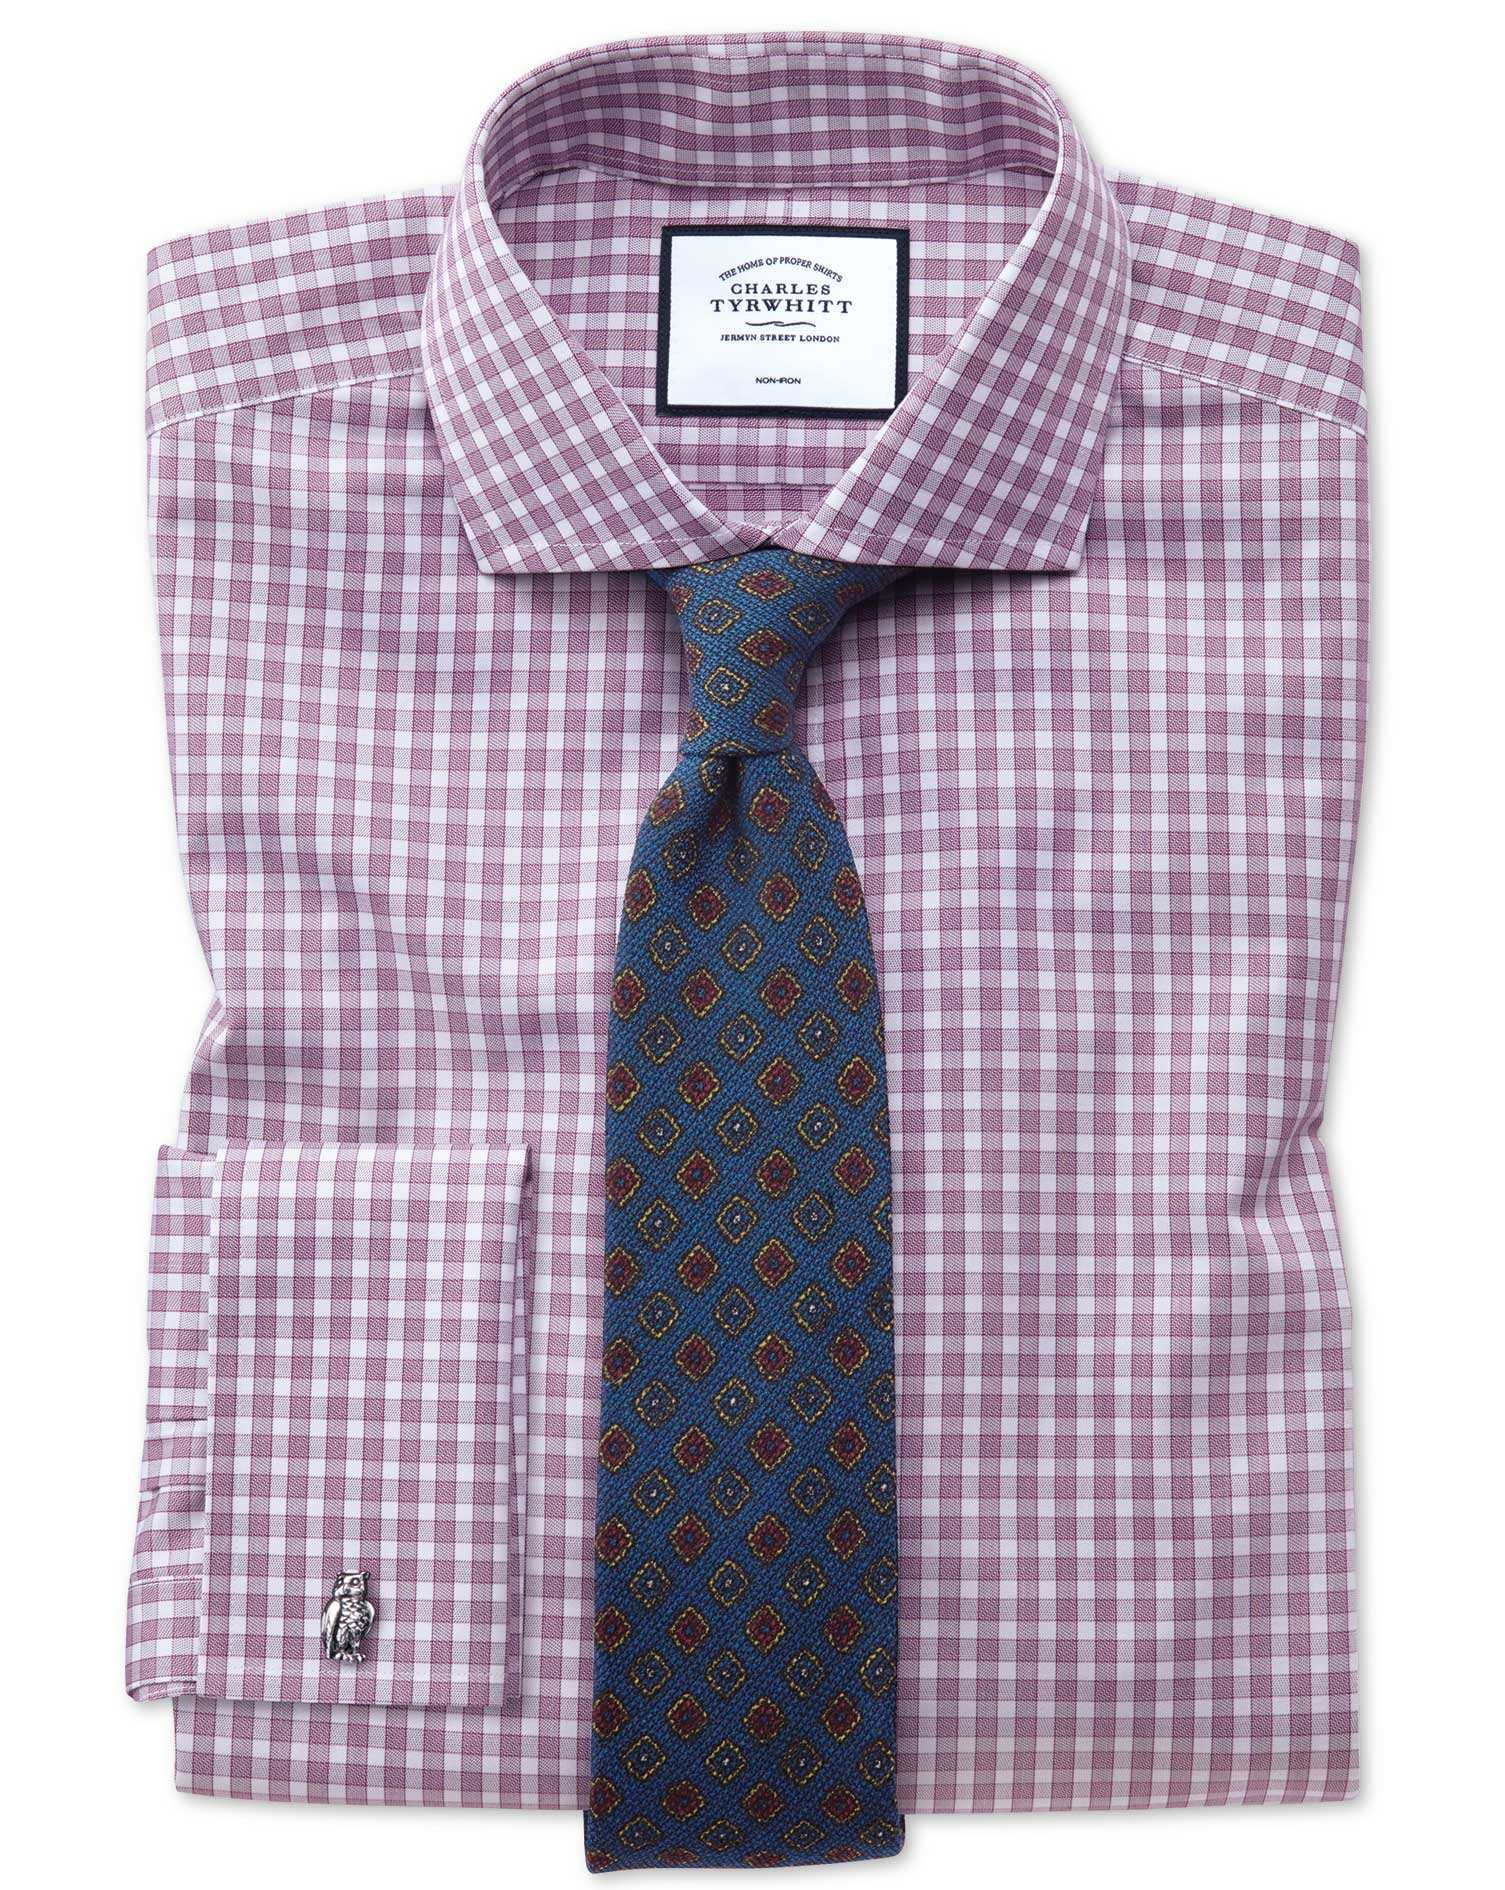 Cufflink shirt - features, rules and recommendations 19